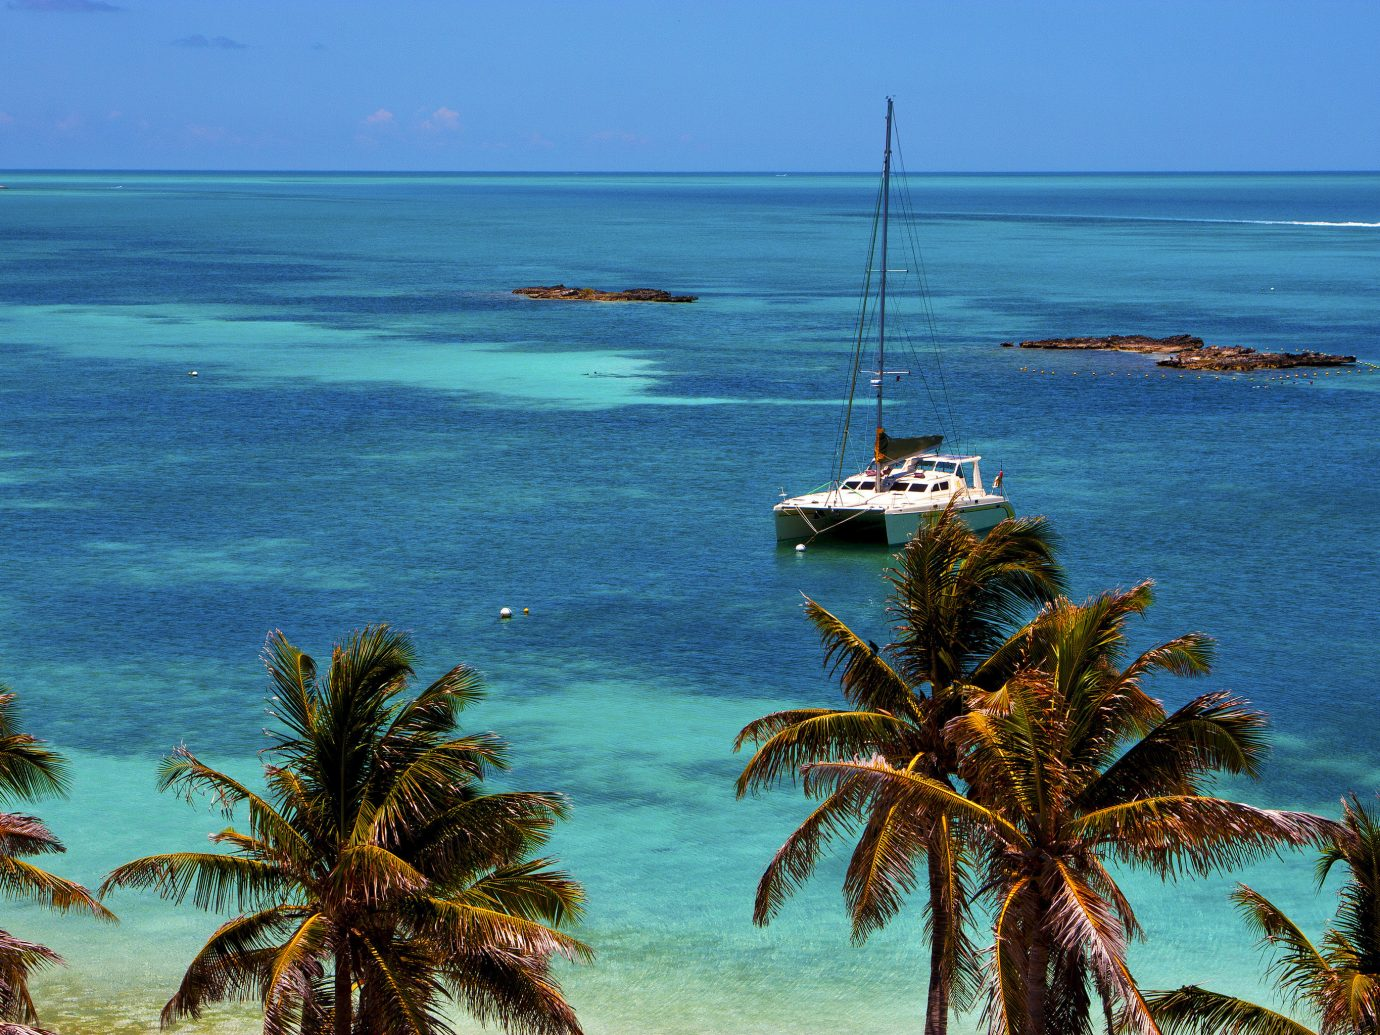 City Mexico Trip Ideas Tulum water sky Sea outdoor palm body of water Ocean tropics coastal and oceanic landforms palm tree arecales Coast shore promontory Beach caribbean tree vacation tourism Island plant bay Lagoon cape islet lined